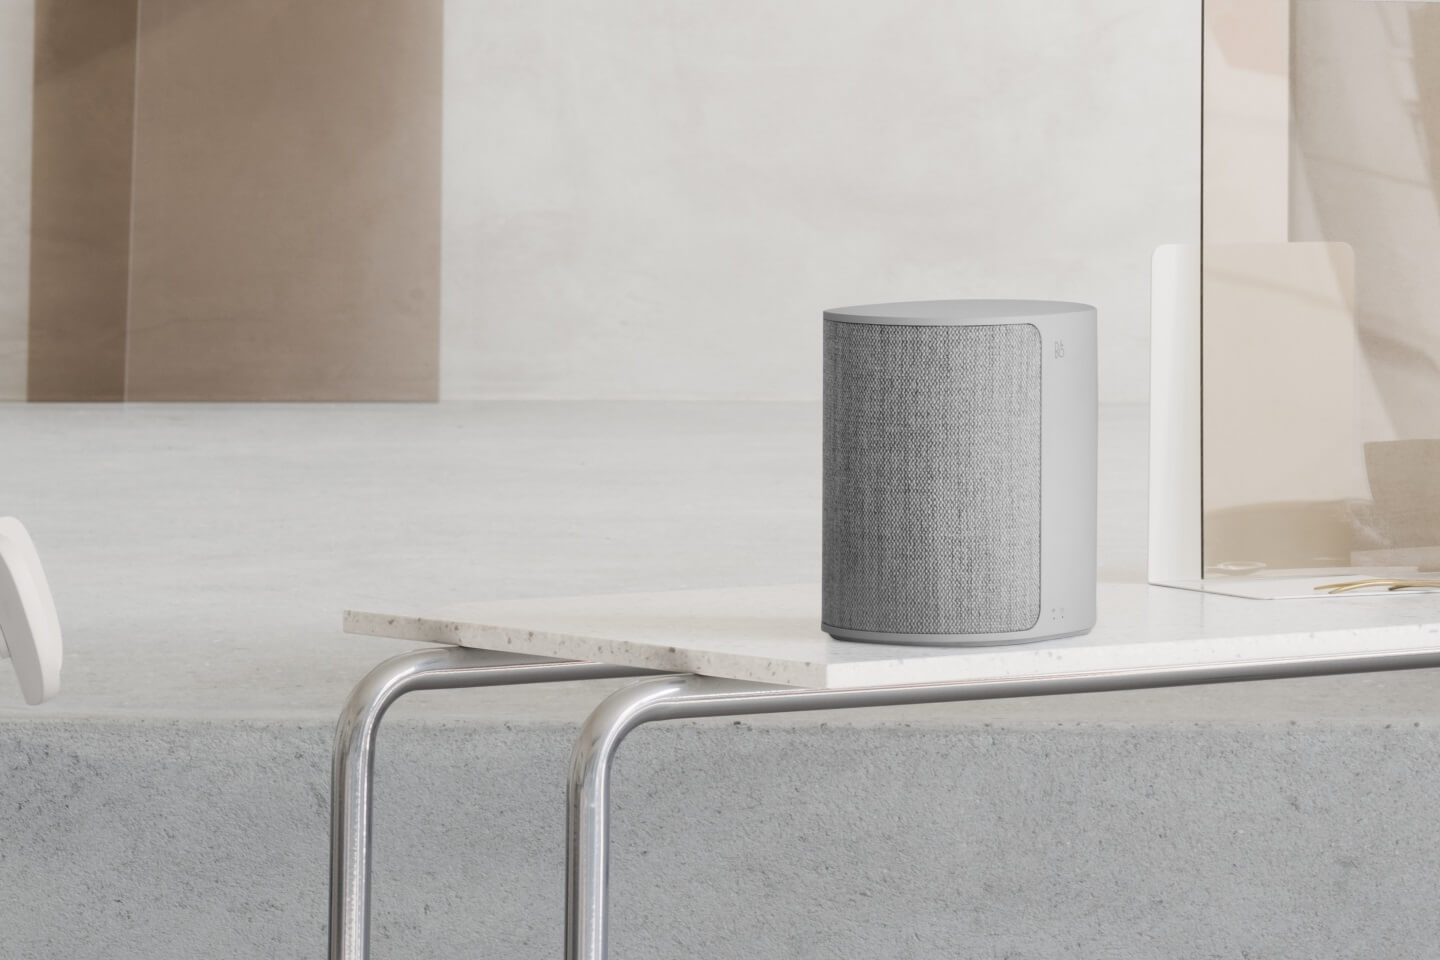 BeoPlay M3 natural frontal